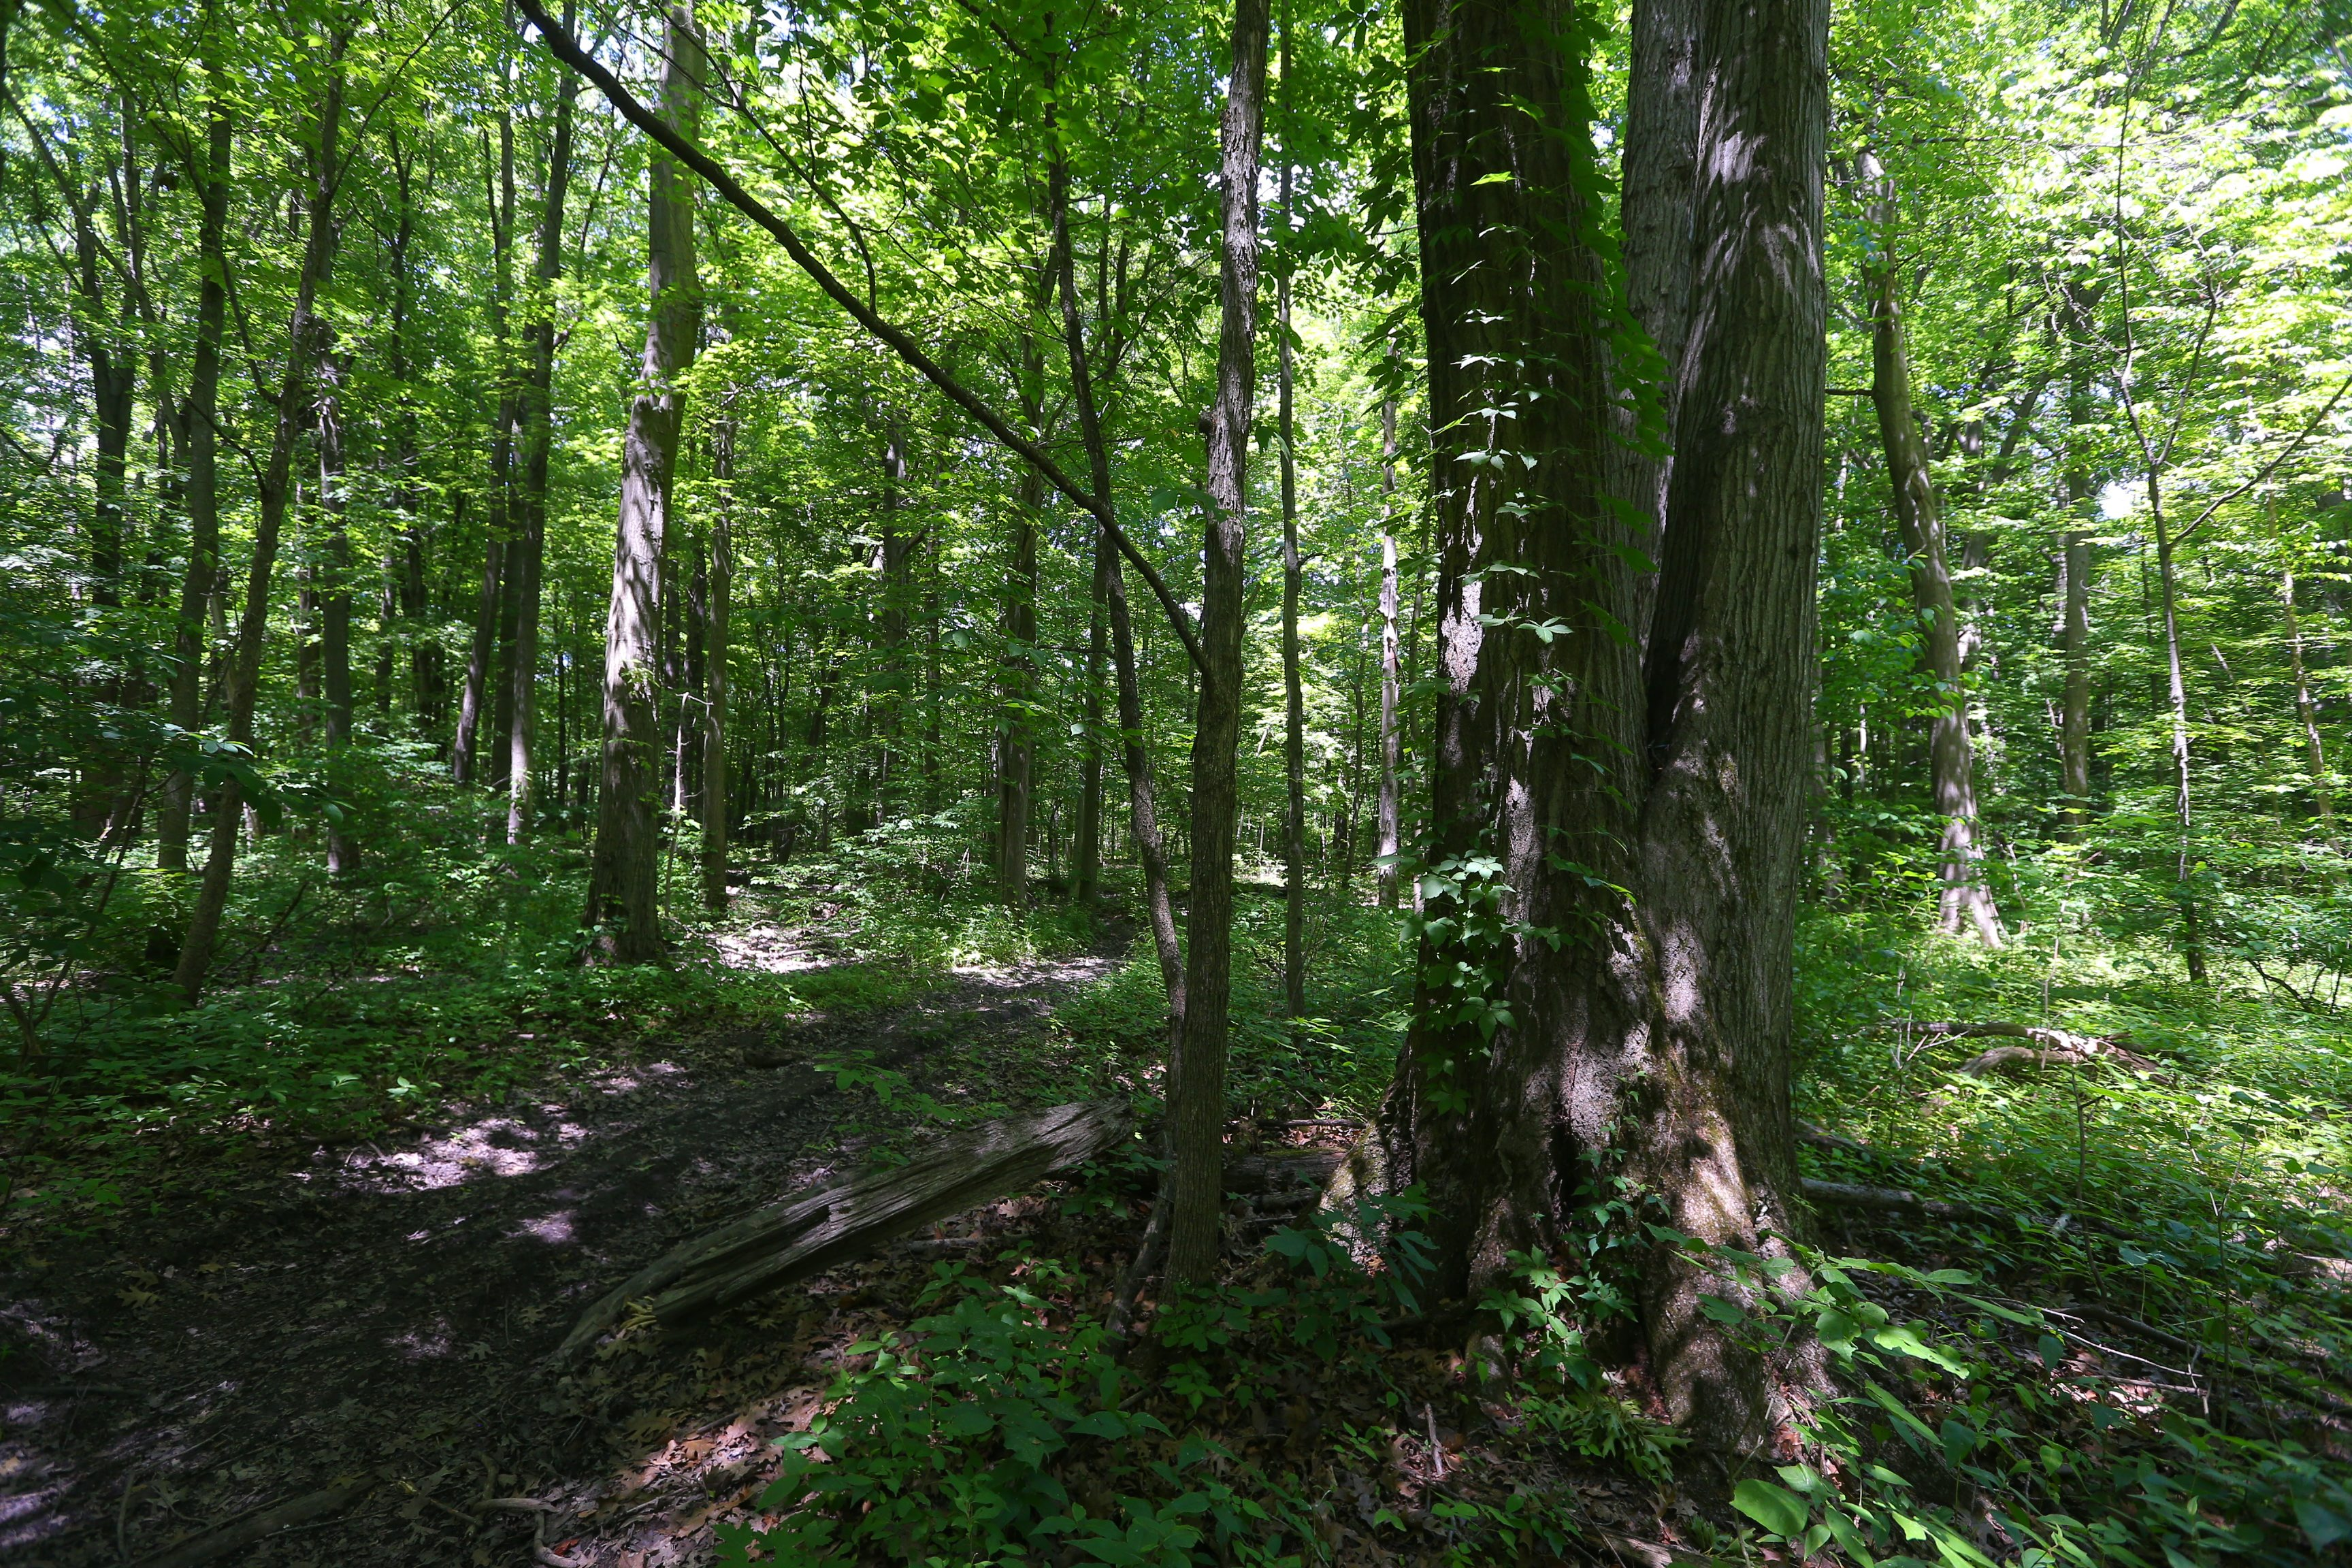 Nature View Park, a 1,254-acre park of forests, fields, creeks and trails, in Amherst, N.Y.,on Thursday June 30, 2016.  (John Hickey/Buffalo News)